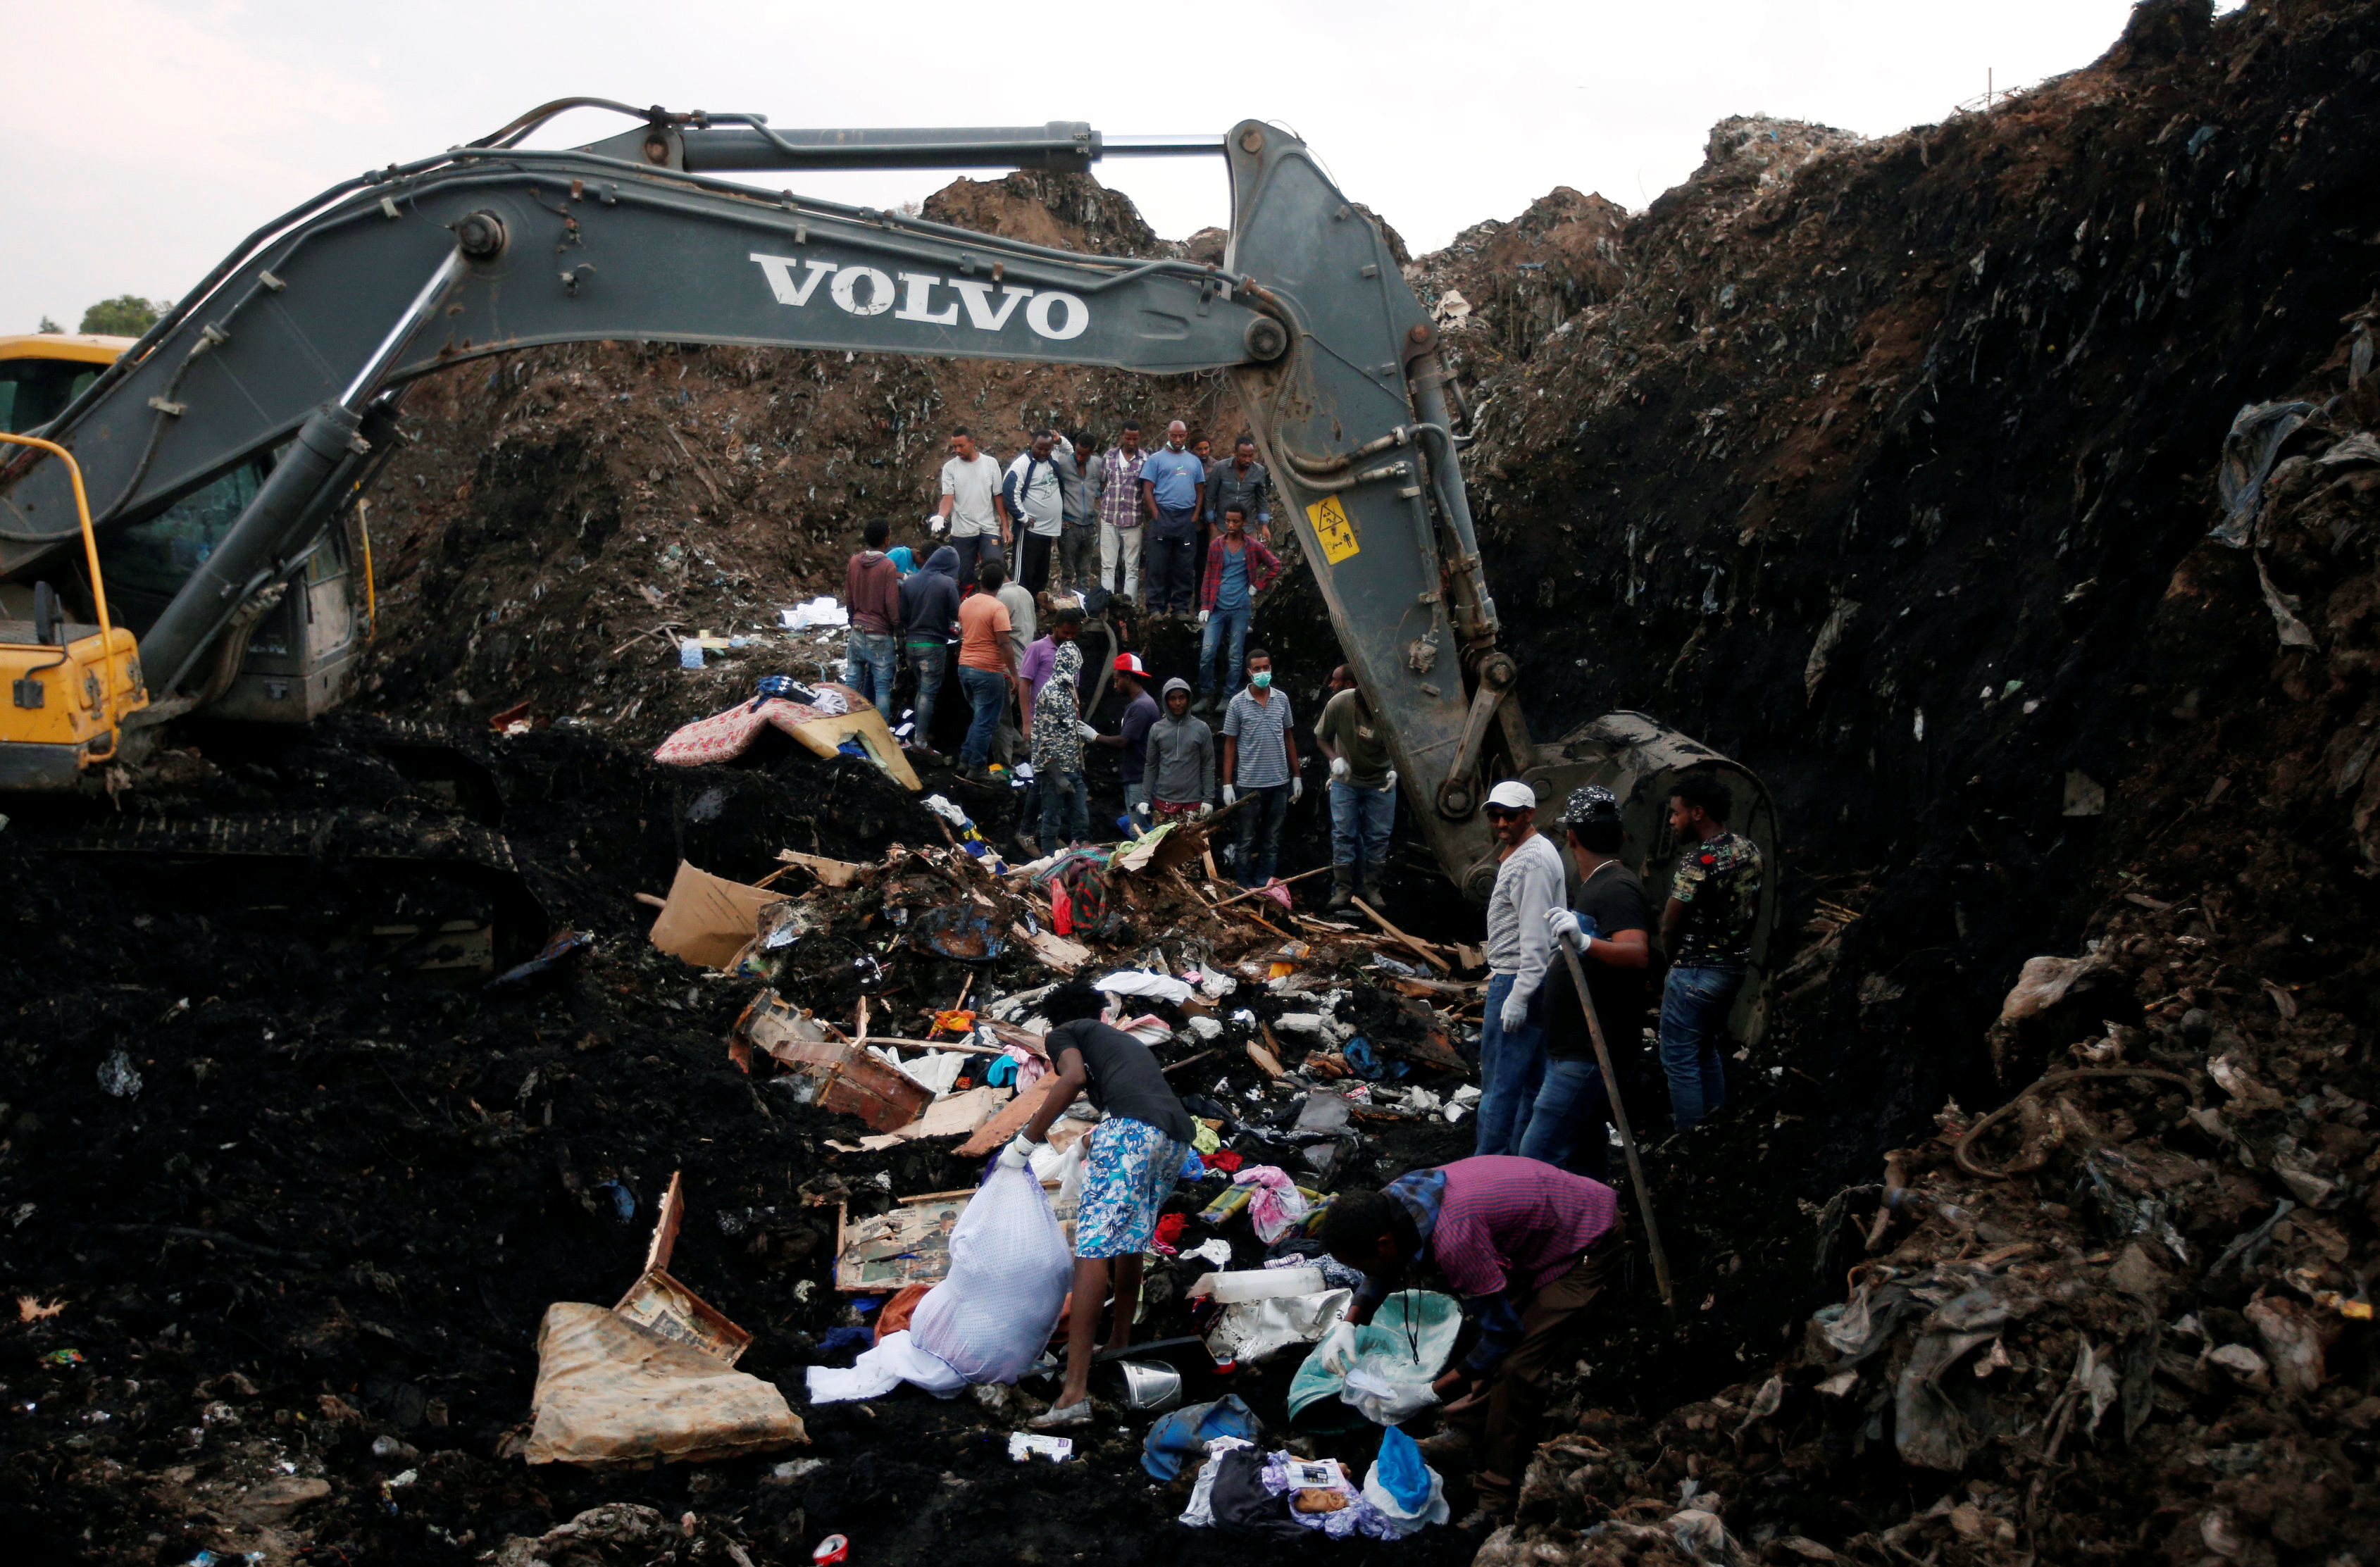 Rescue workers watch as excavators dig into a pile of garbage in search of missing people following a landslide when a mound of trash collapsed on an informal settlement at the Koshe garbage dump in Ethiopia's capital Addis Ababa, March 13, 2017.